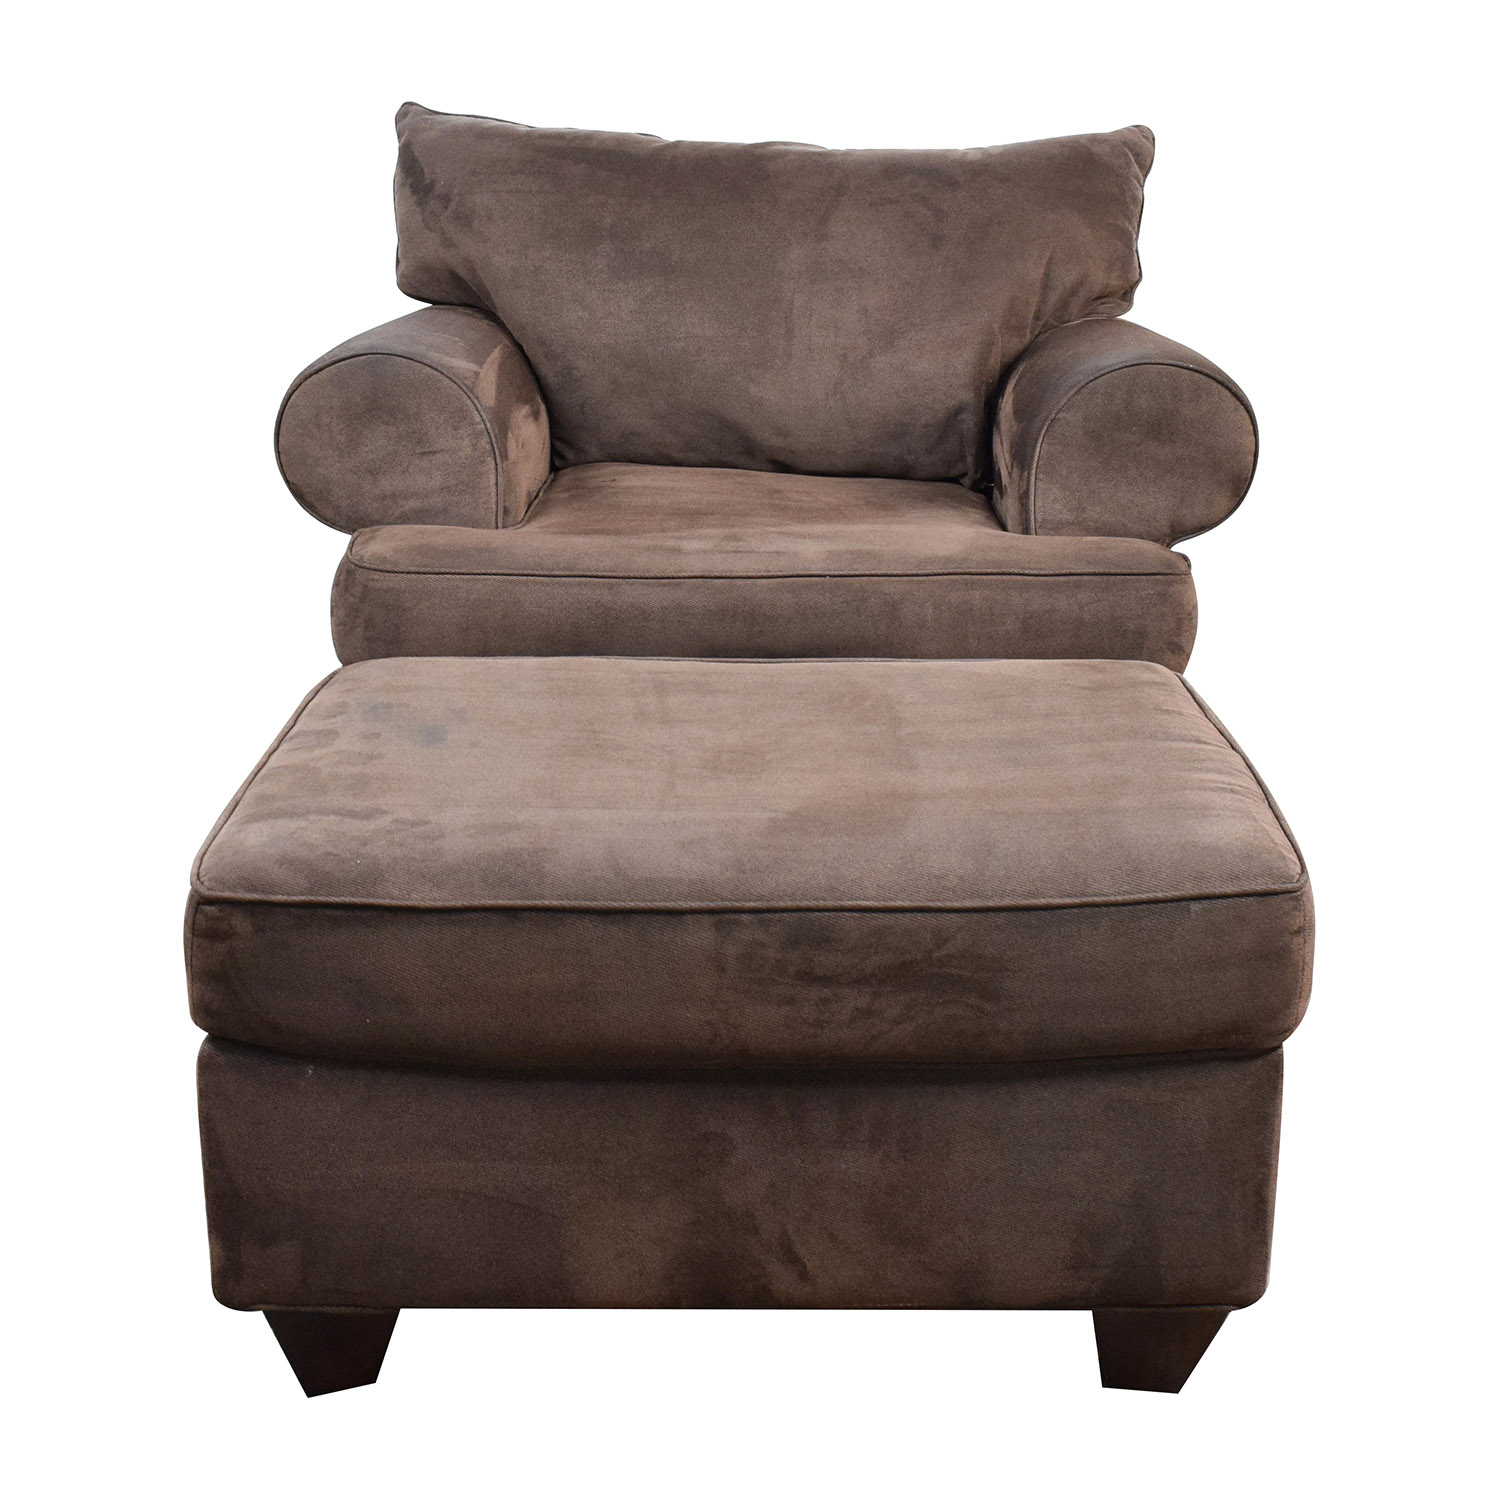 67% OFF - Dark Brown Sofa Chair with Ottoman / Chairs